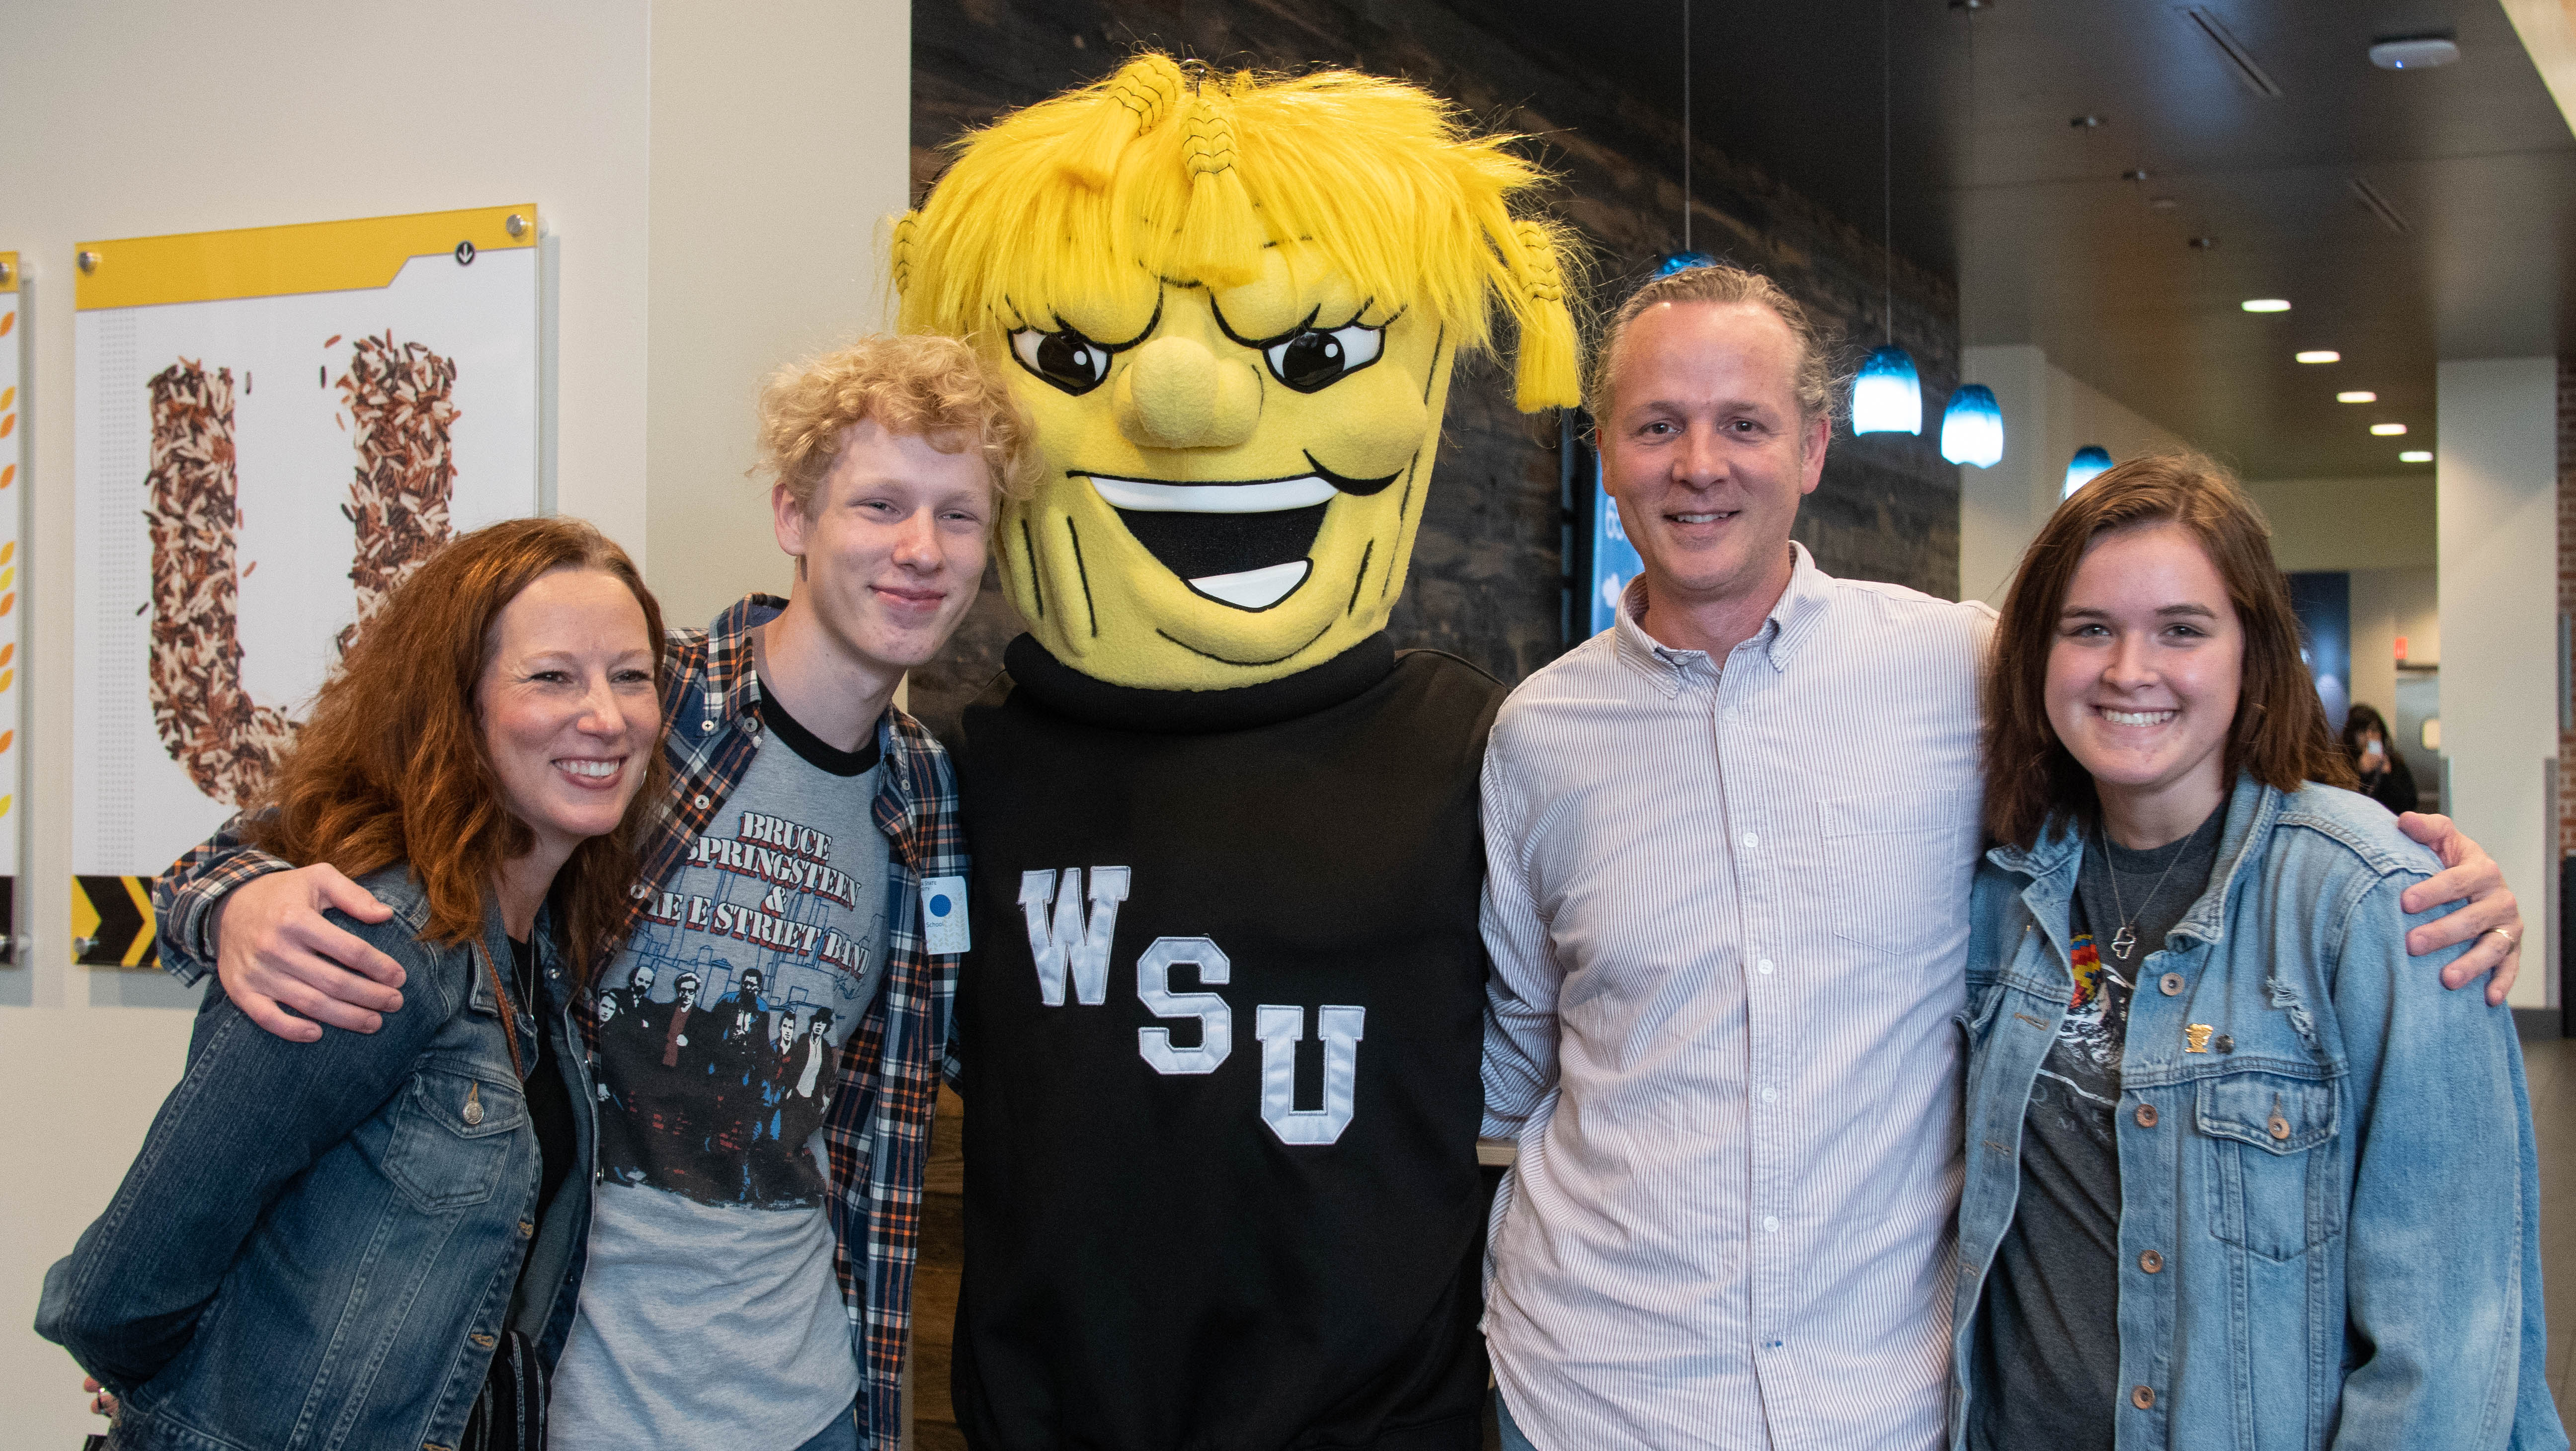 A Shocker family with Wu